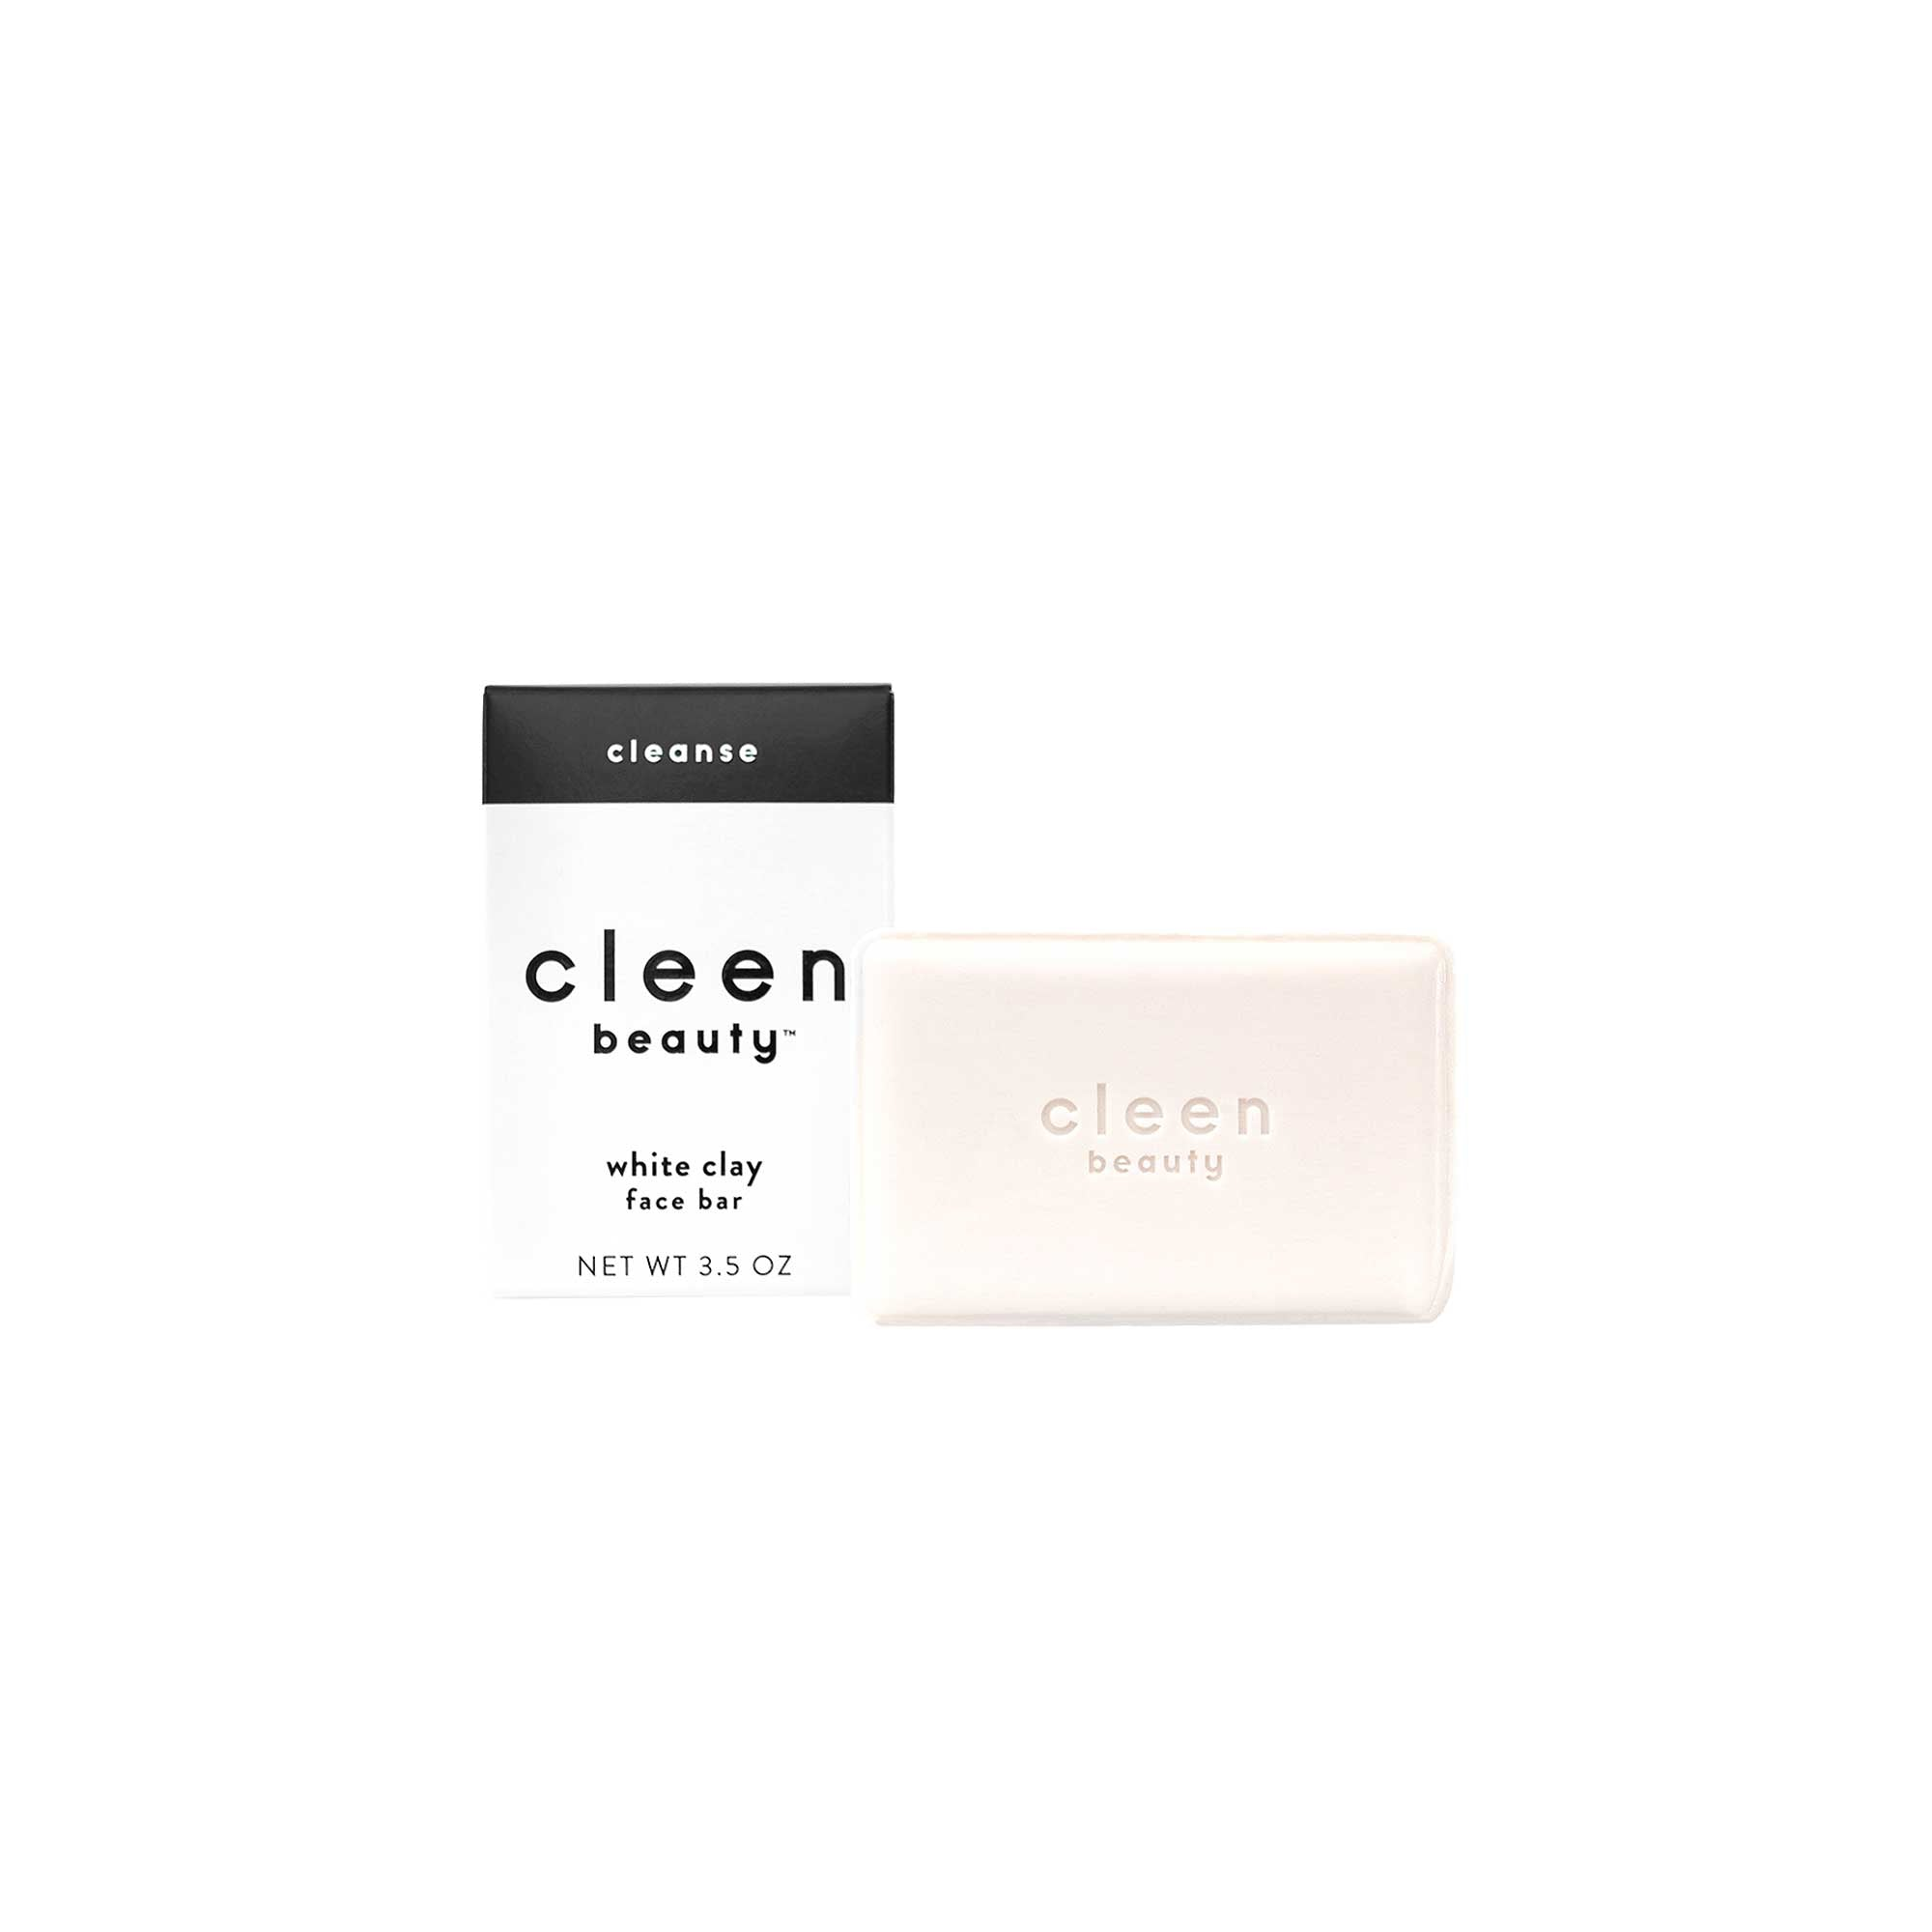 cleen beauty™ White Clay Face Bar